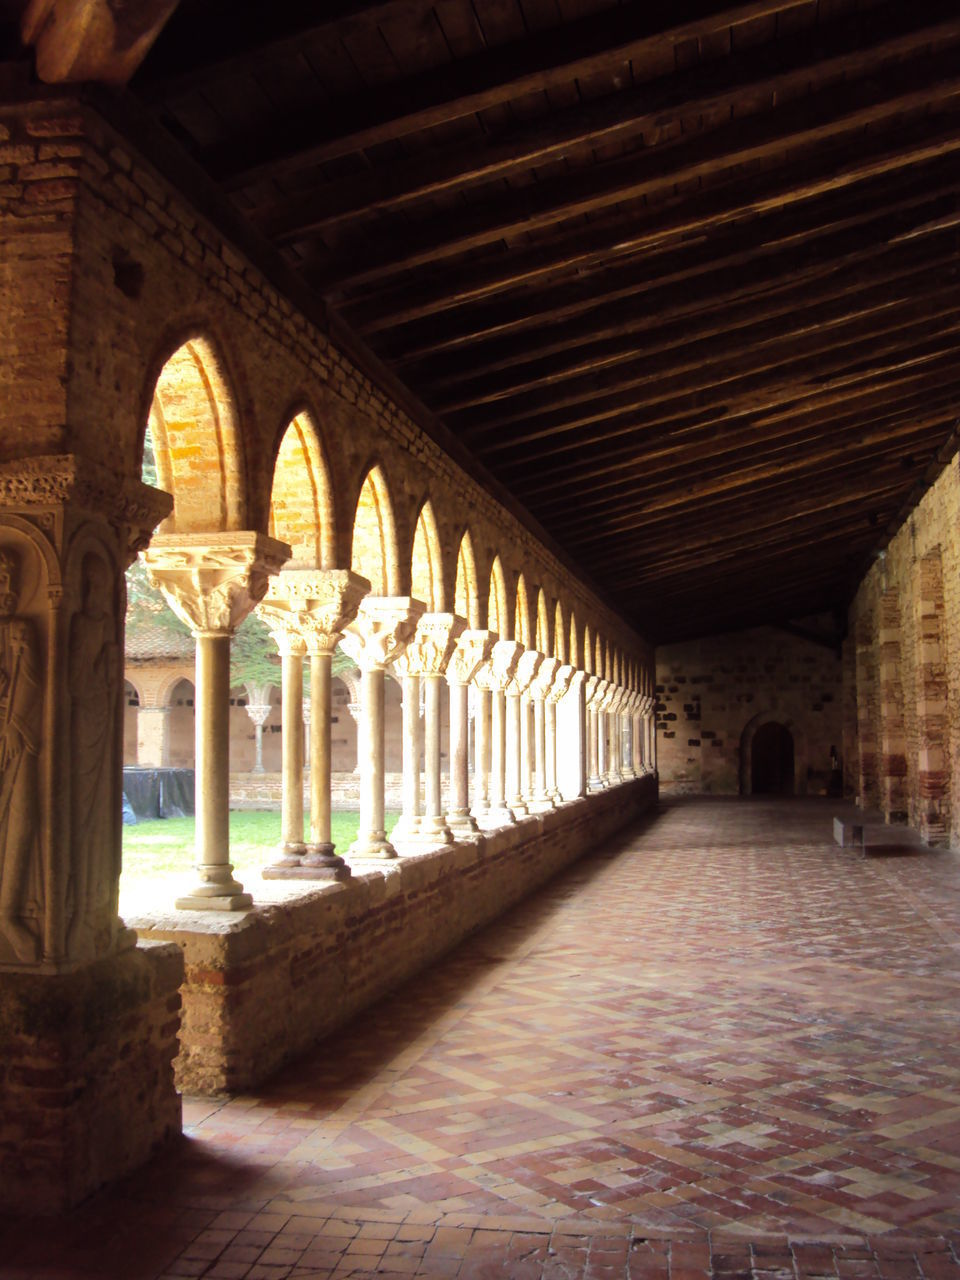 VIEW OF COLONNADE IN OLD BUILDING